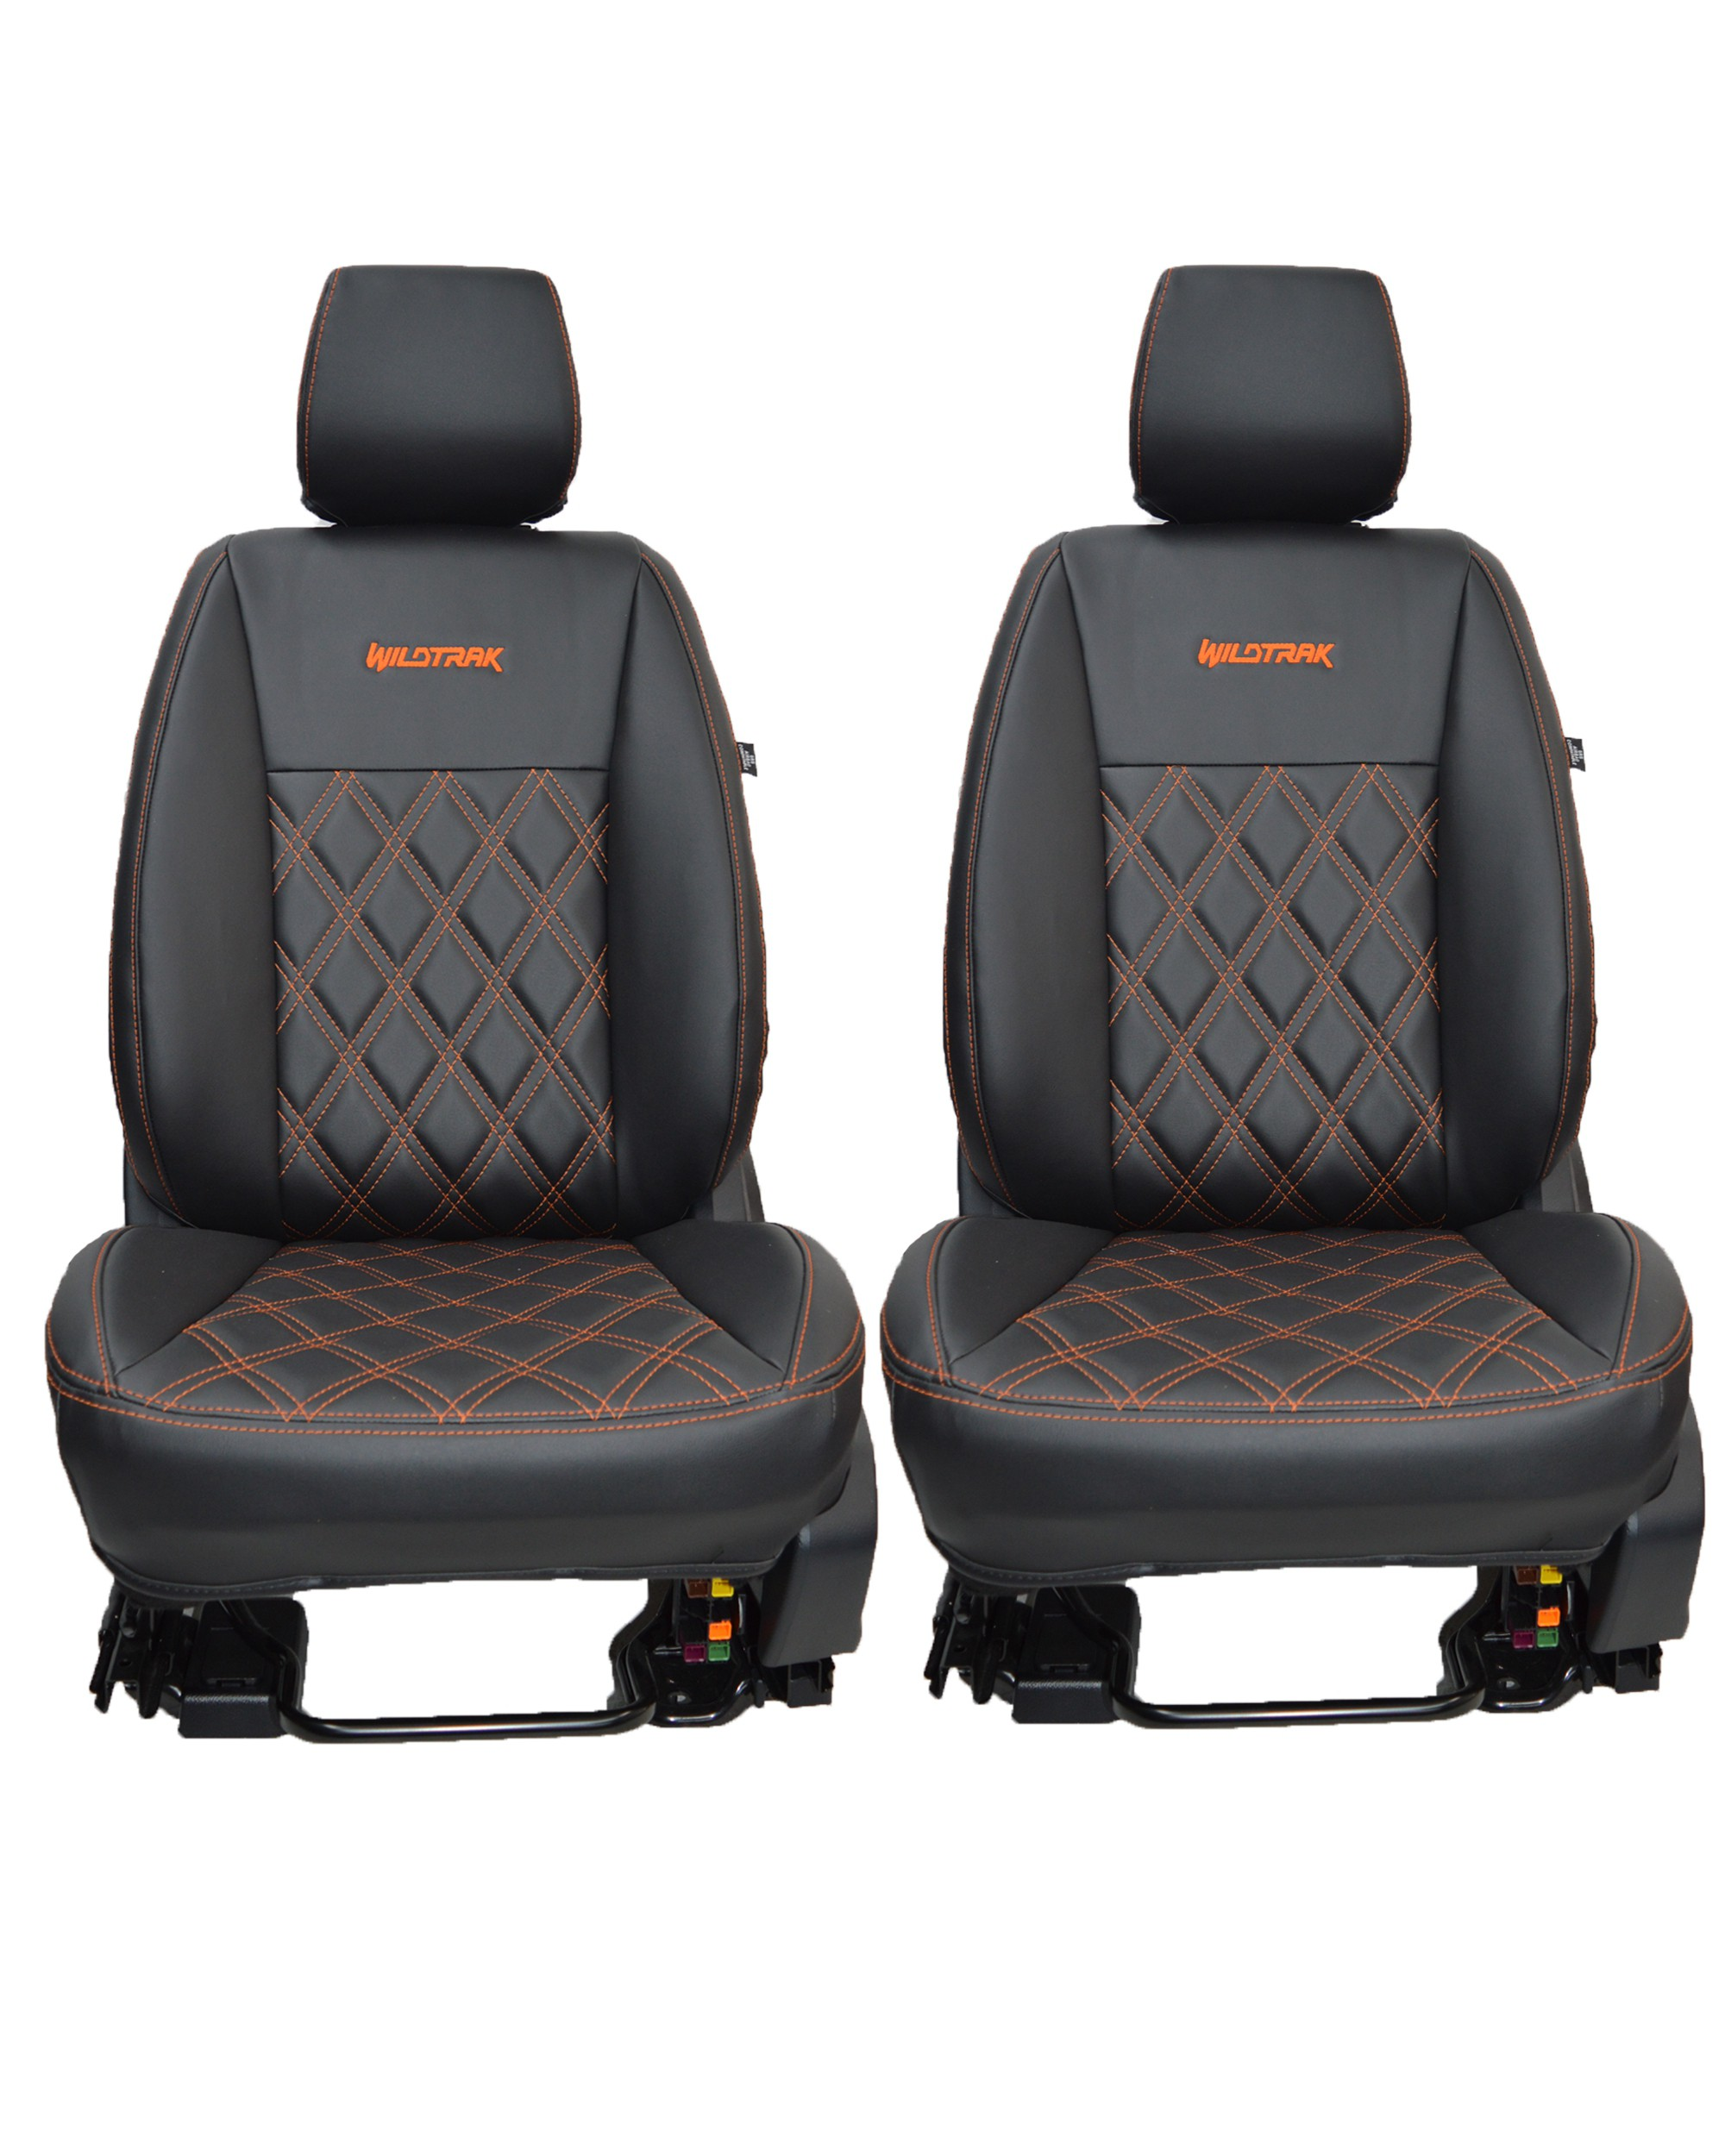 Ford Ranger Wildtrak - Black & Orange Seat Covers